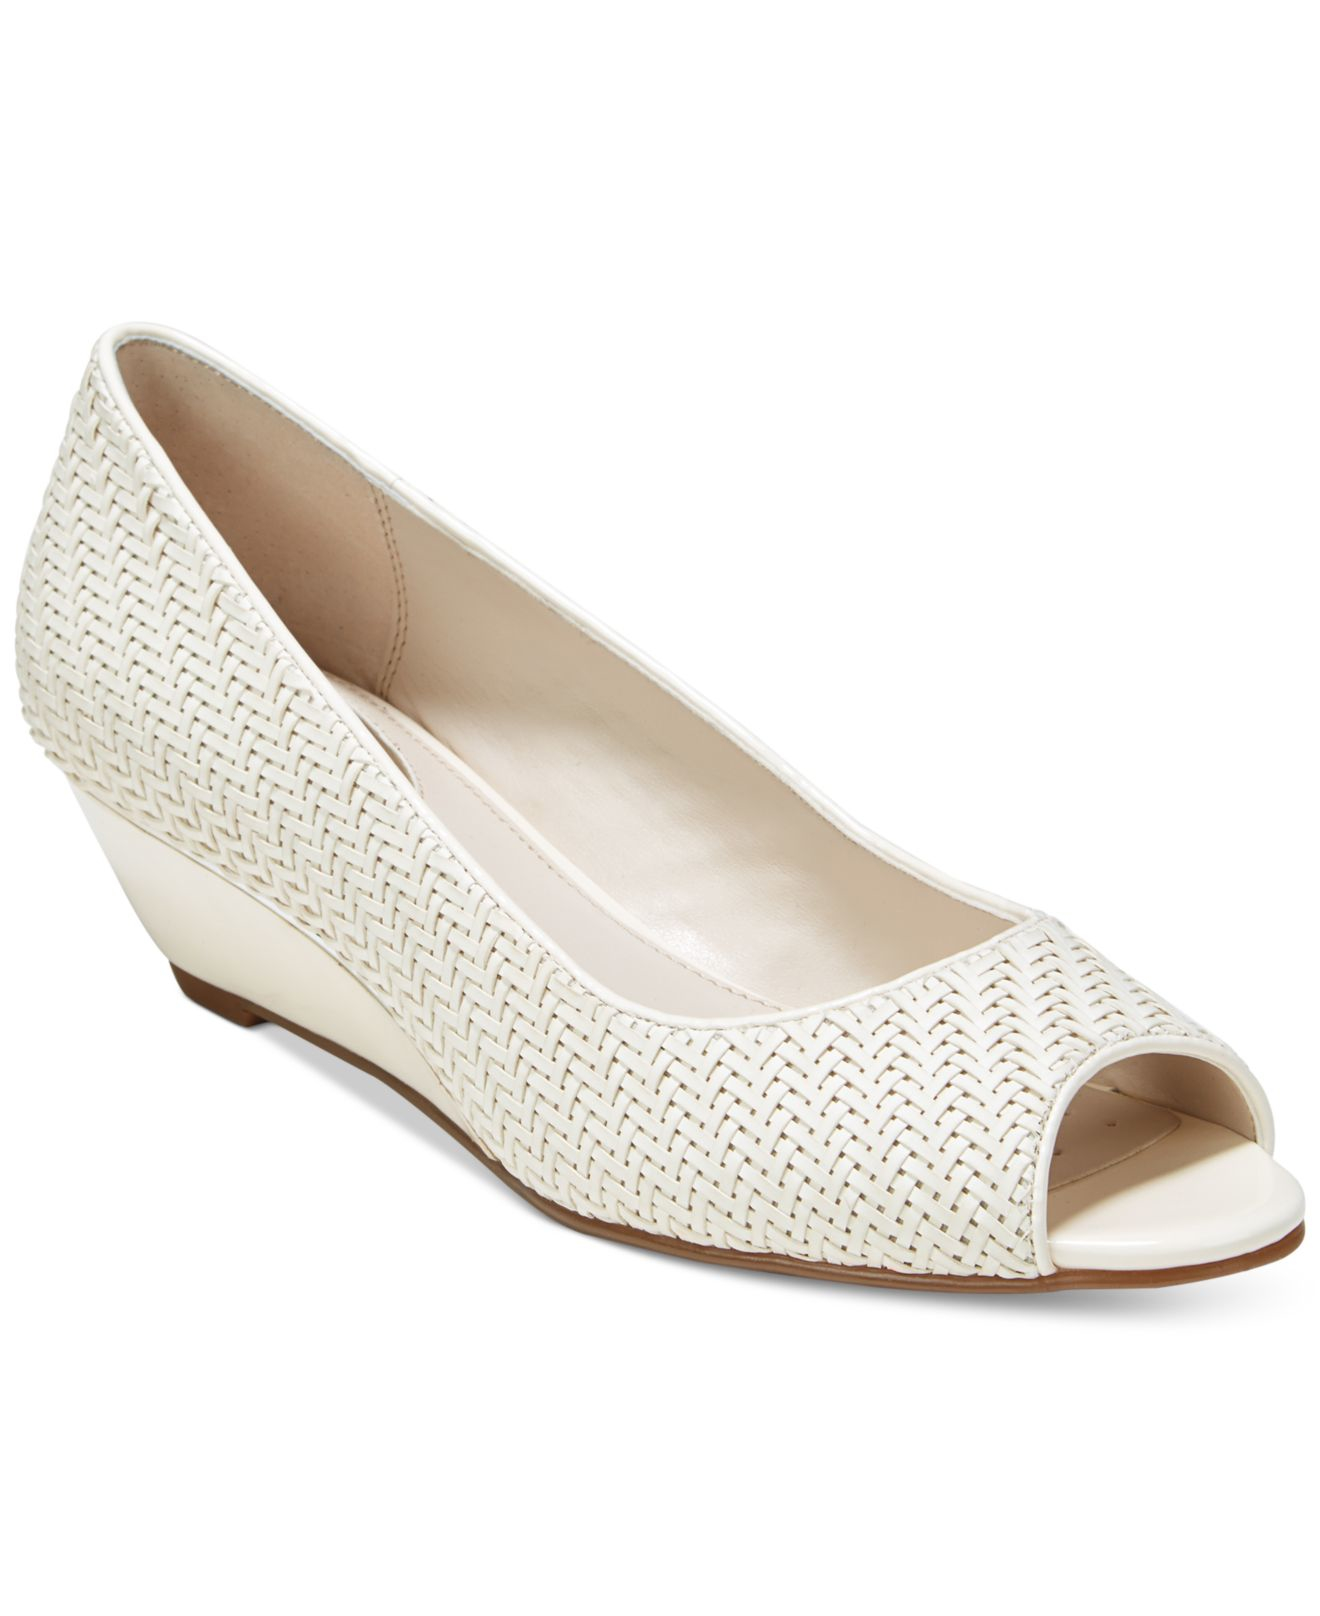 Shoes With Gap In Heel Sole